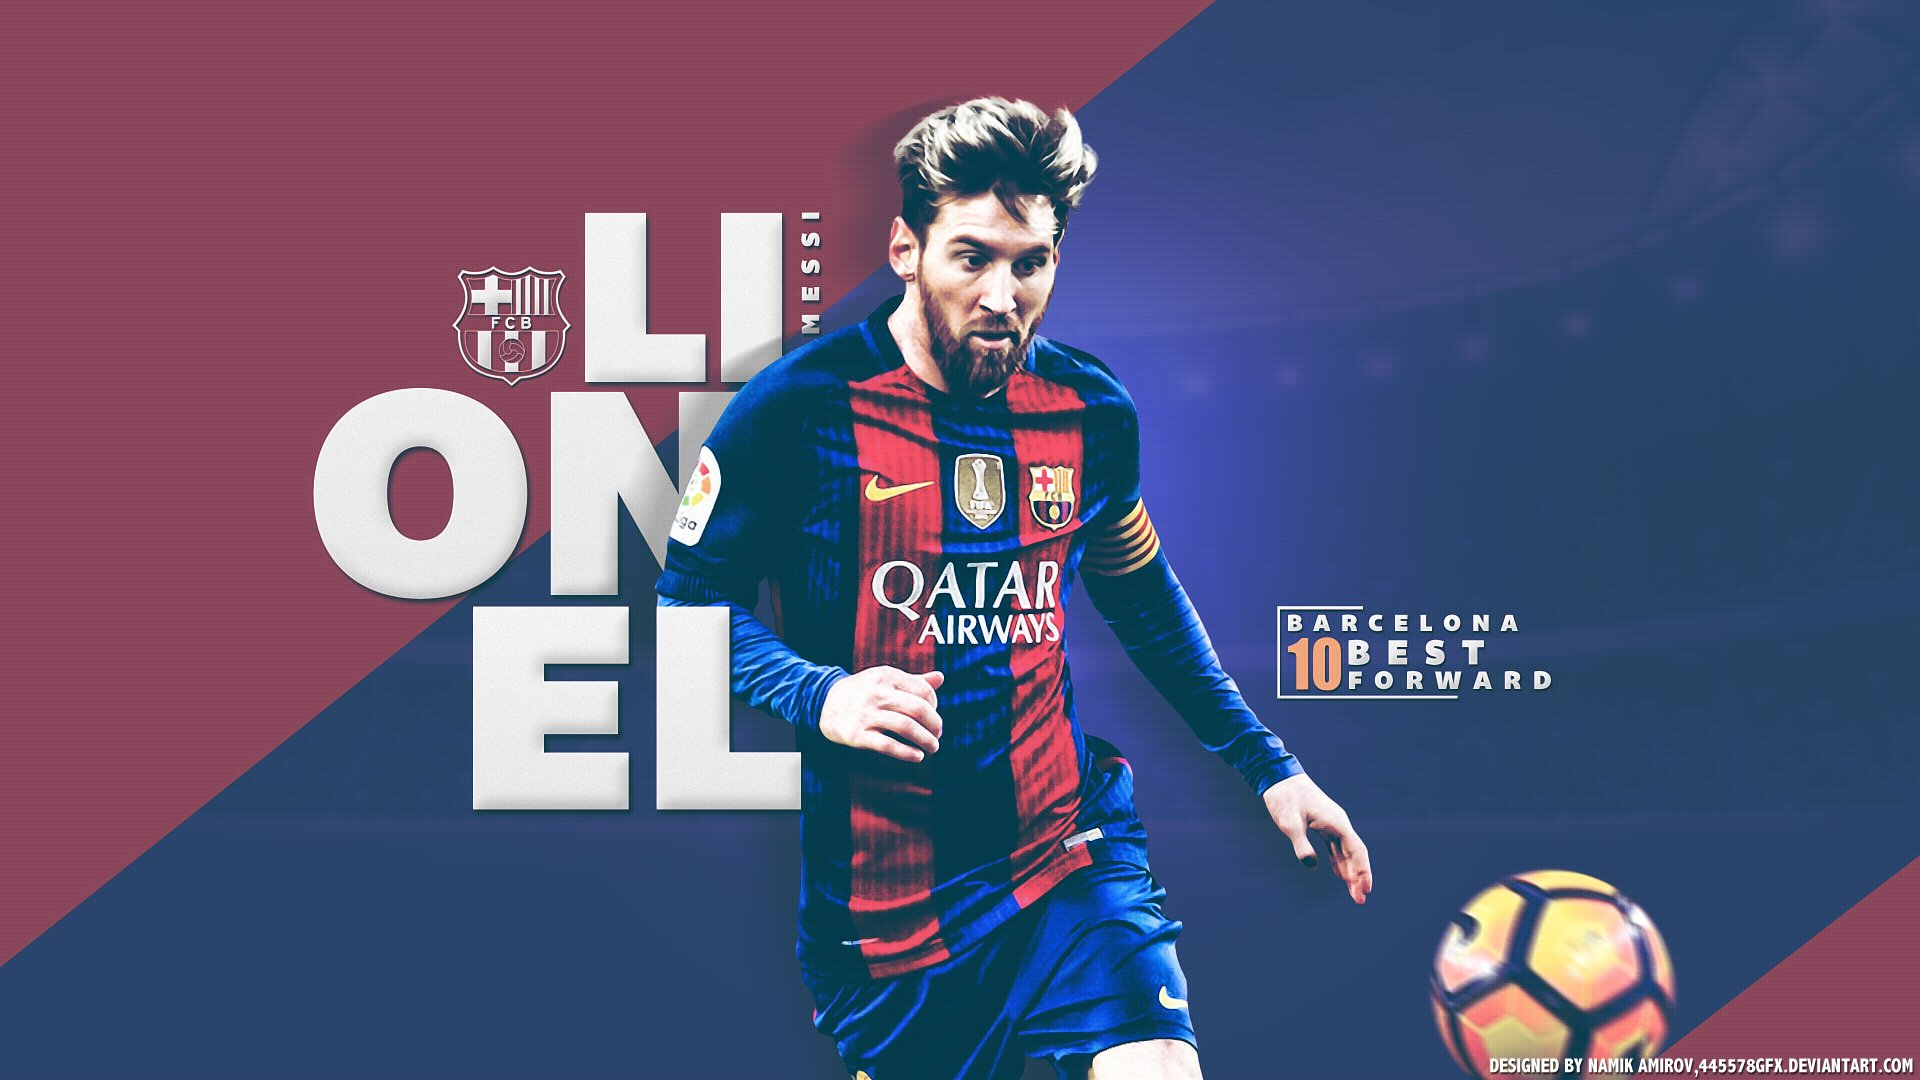 Lionel Messi Barcelona Hd Wallpaper Background Image 1920x1080 Id 971814 Wallpaper Abyss